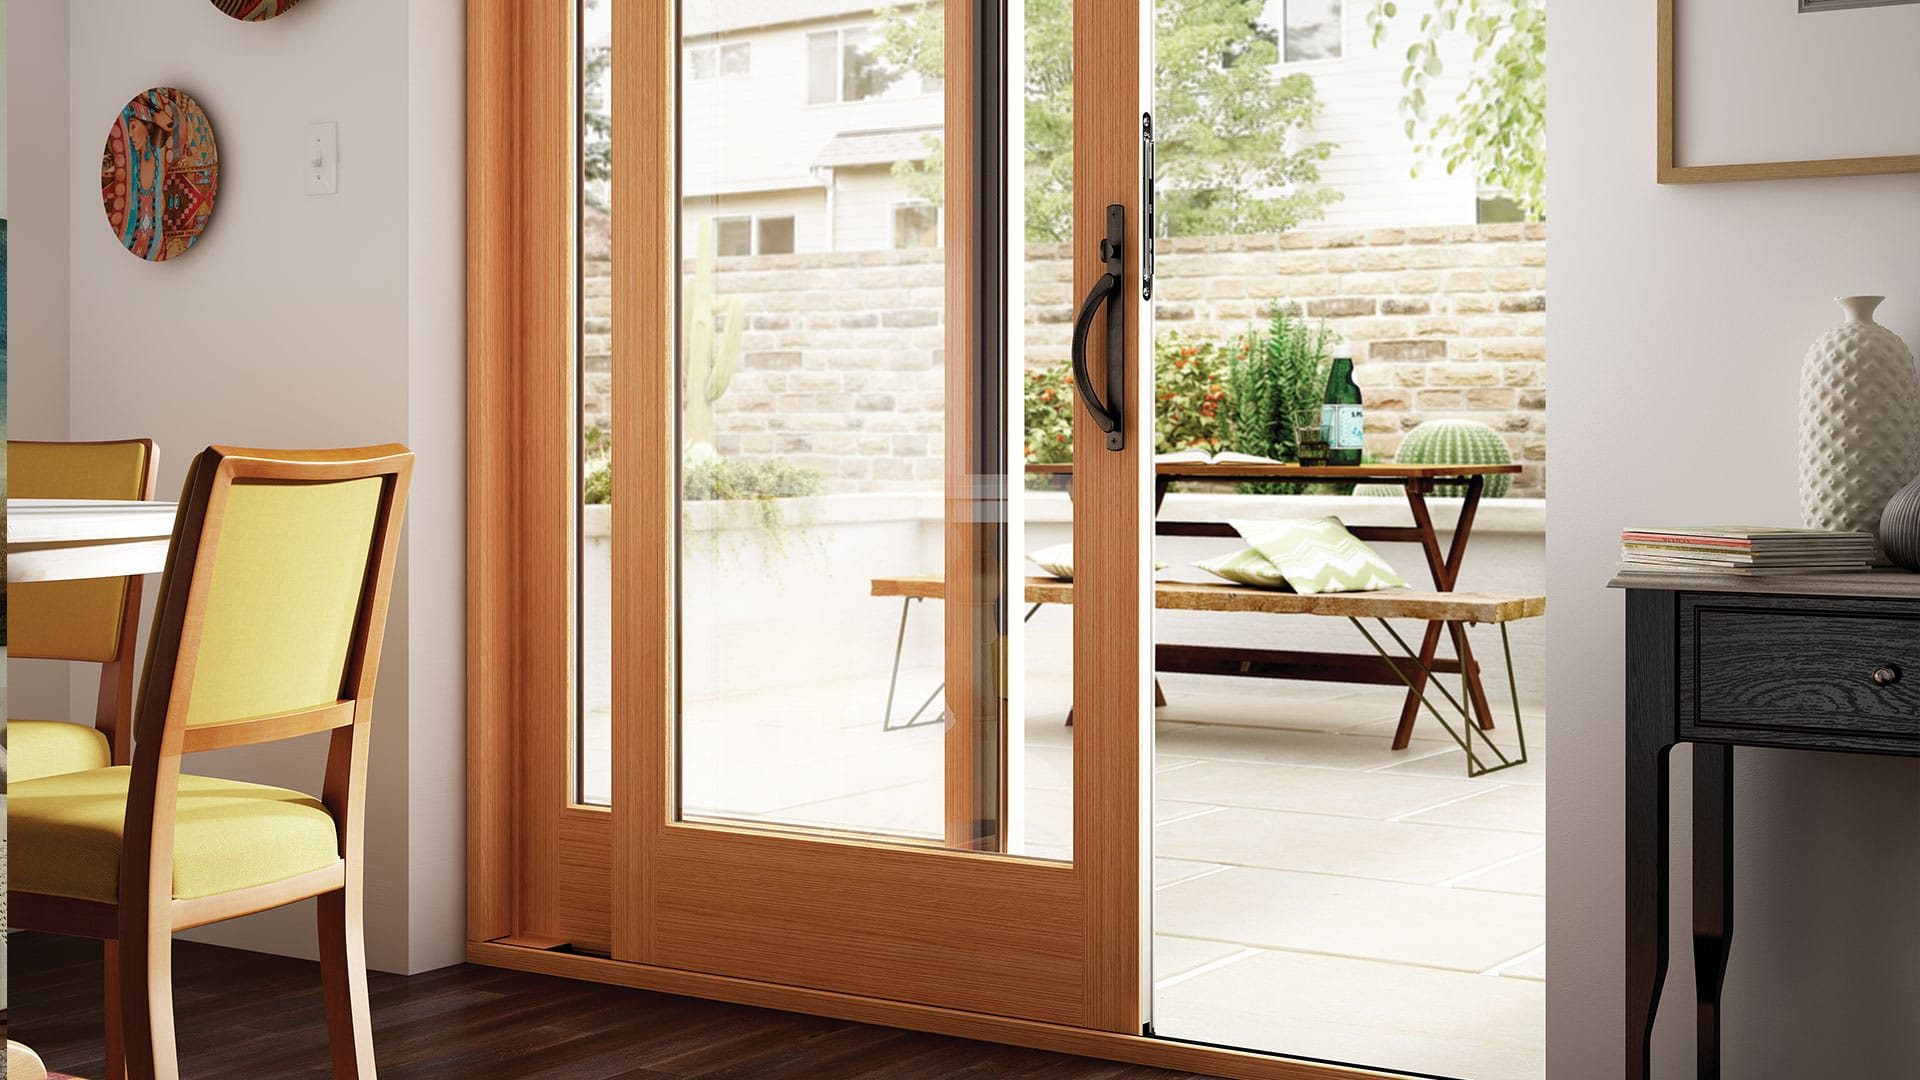 Get The Space Saving Convenience Of A Sliding Door With All The Traditional  Beauty Of A French Patio Door.French Style Sliding Patio Doors Have Wider  Stiles ...